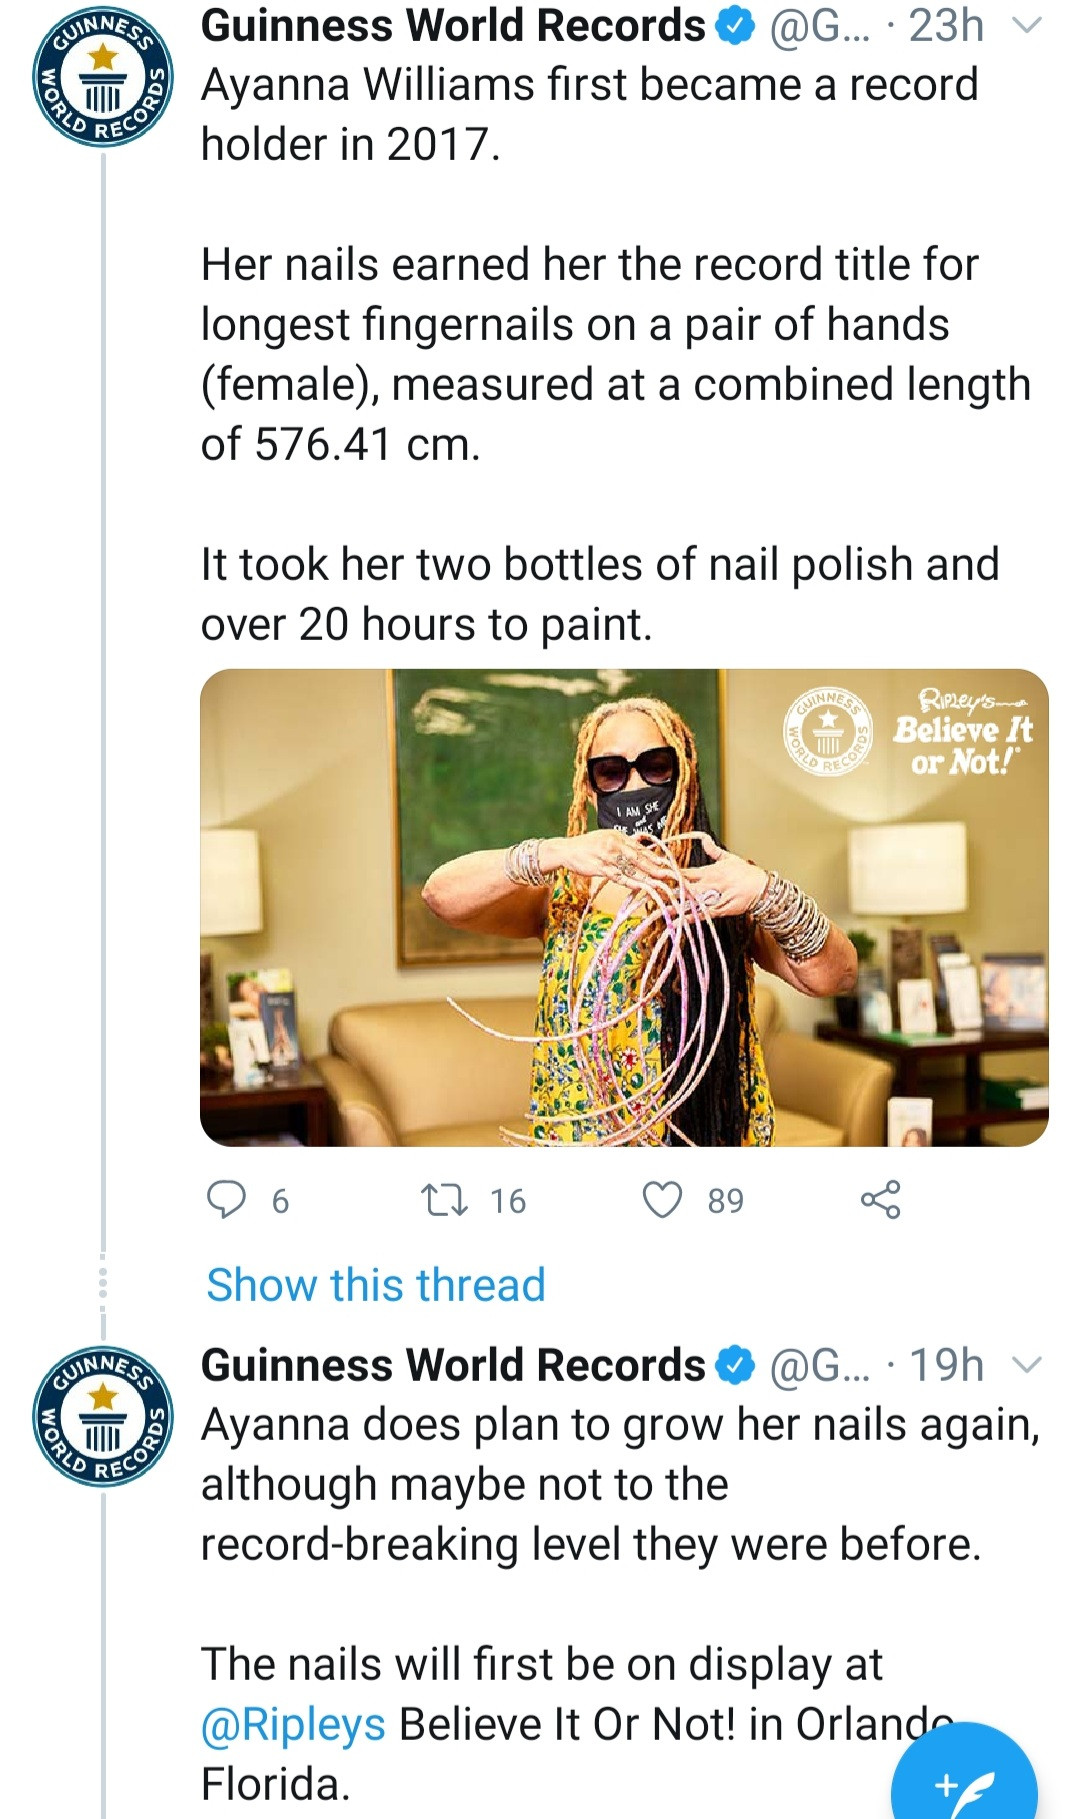 PHOTOS: Woman with Guinness World Record for longest fingernails cuts them after nearly 30 years